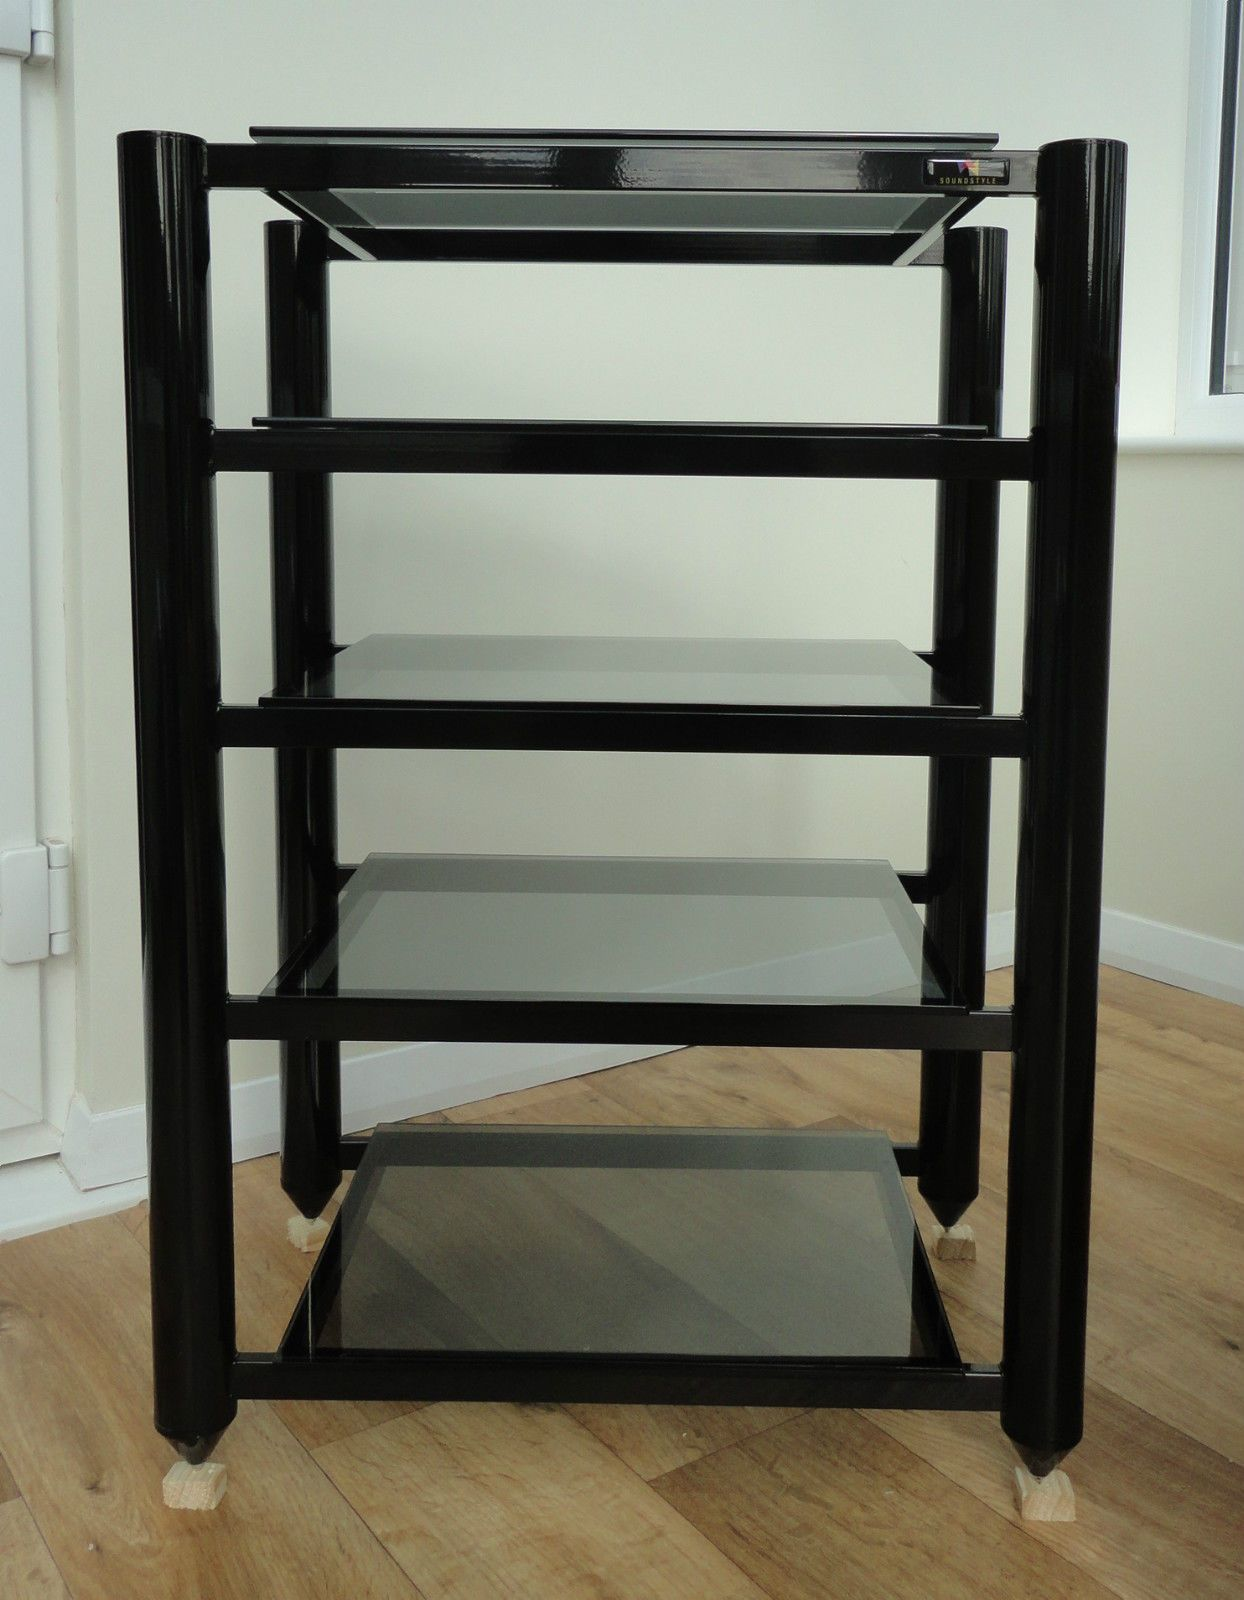 Hifi Rack Selbstbau Glas Soundstyle Hi Fi Audio Rack Black With Tinted Glass